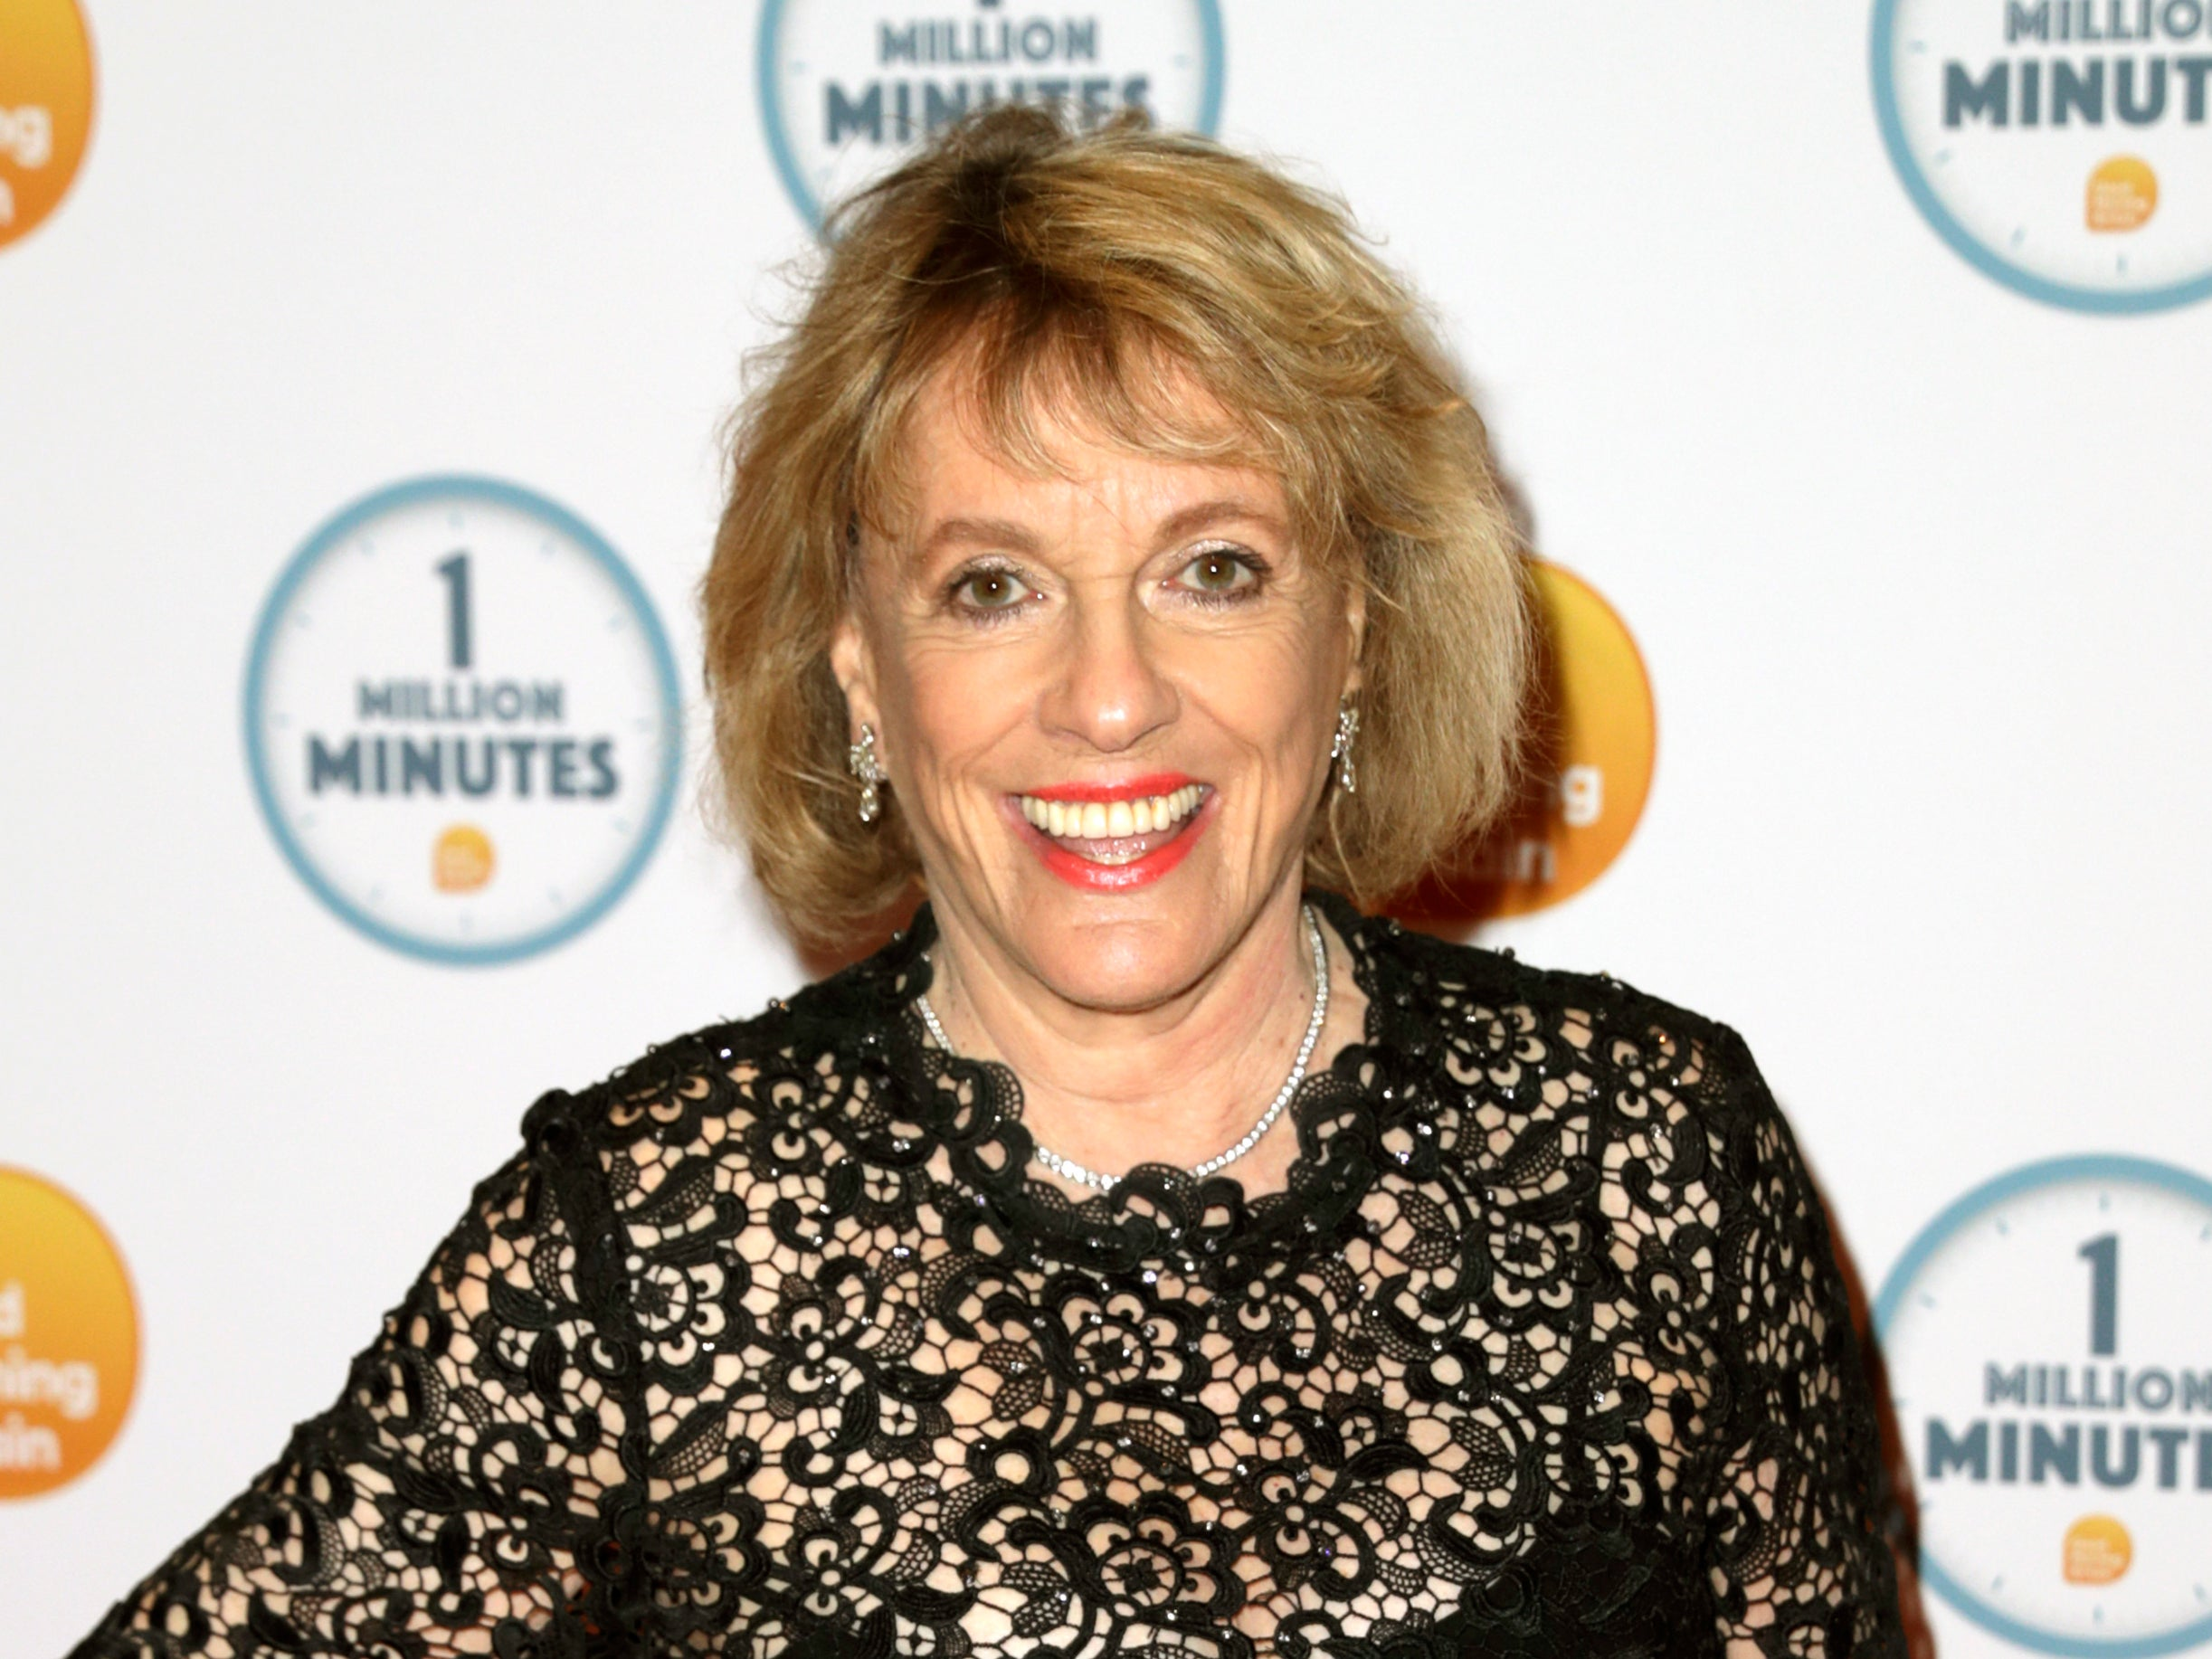 Esther Rantzen outraged at BBC wages: 'Nobody should be paid more than the PM'